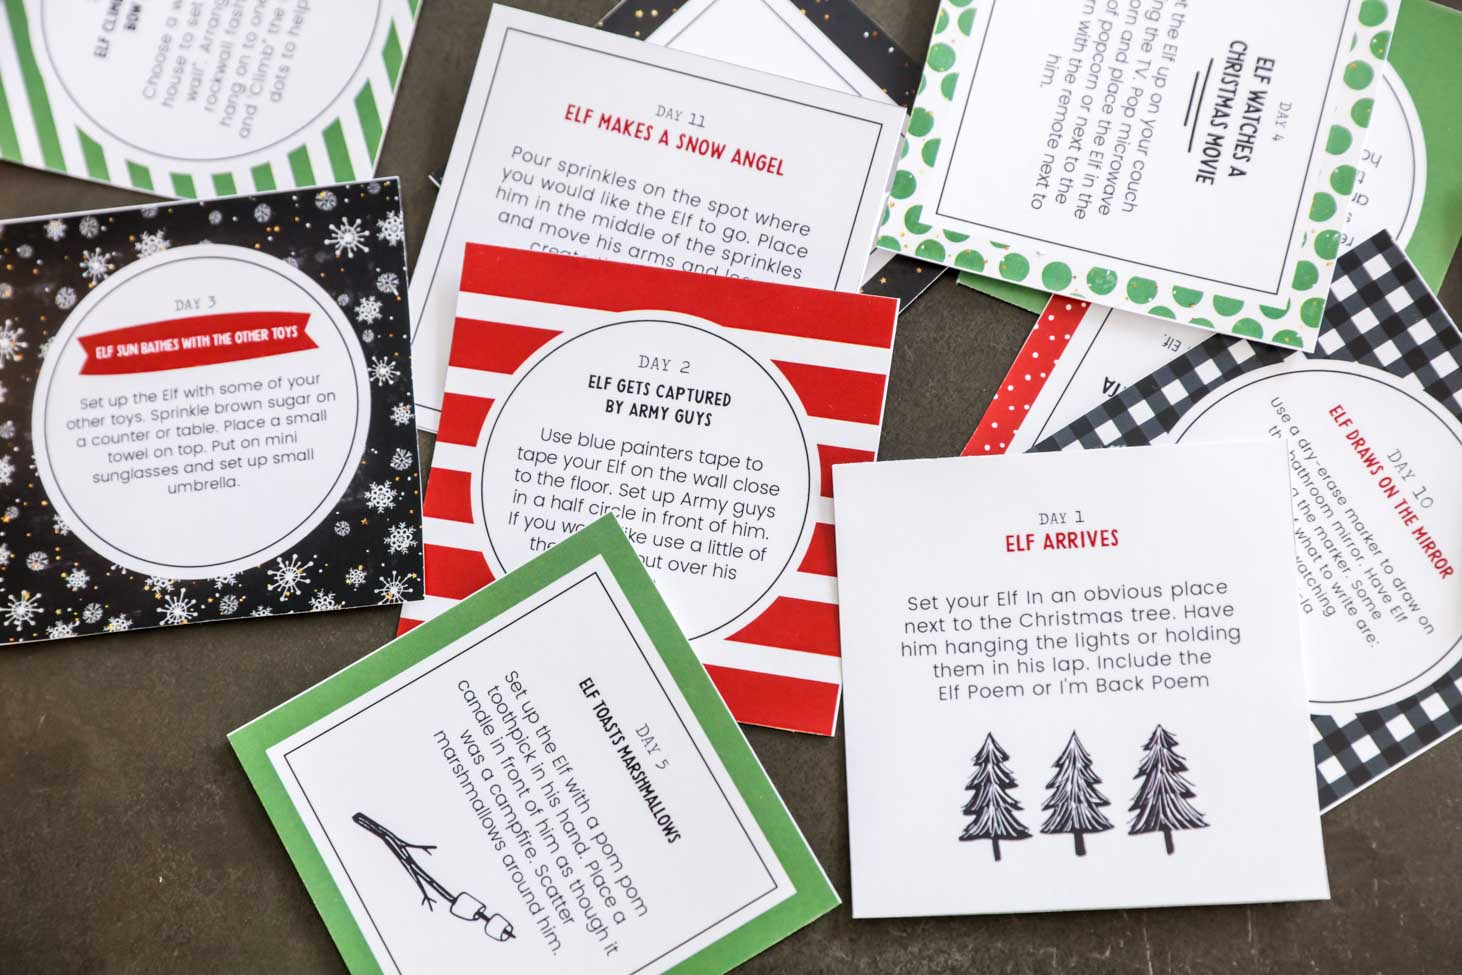 photo about Elf on the Shelf Printable Props named Amusing Elf upon the Shelf Designs + Free of charge Printables Lil Luna